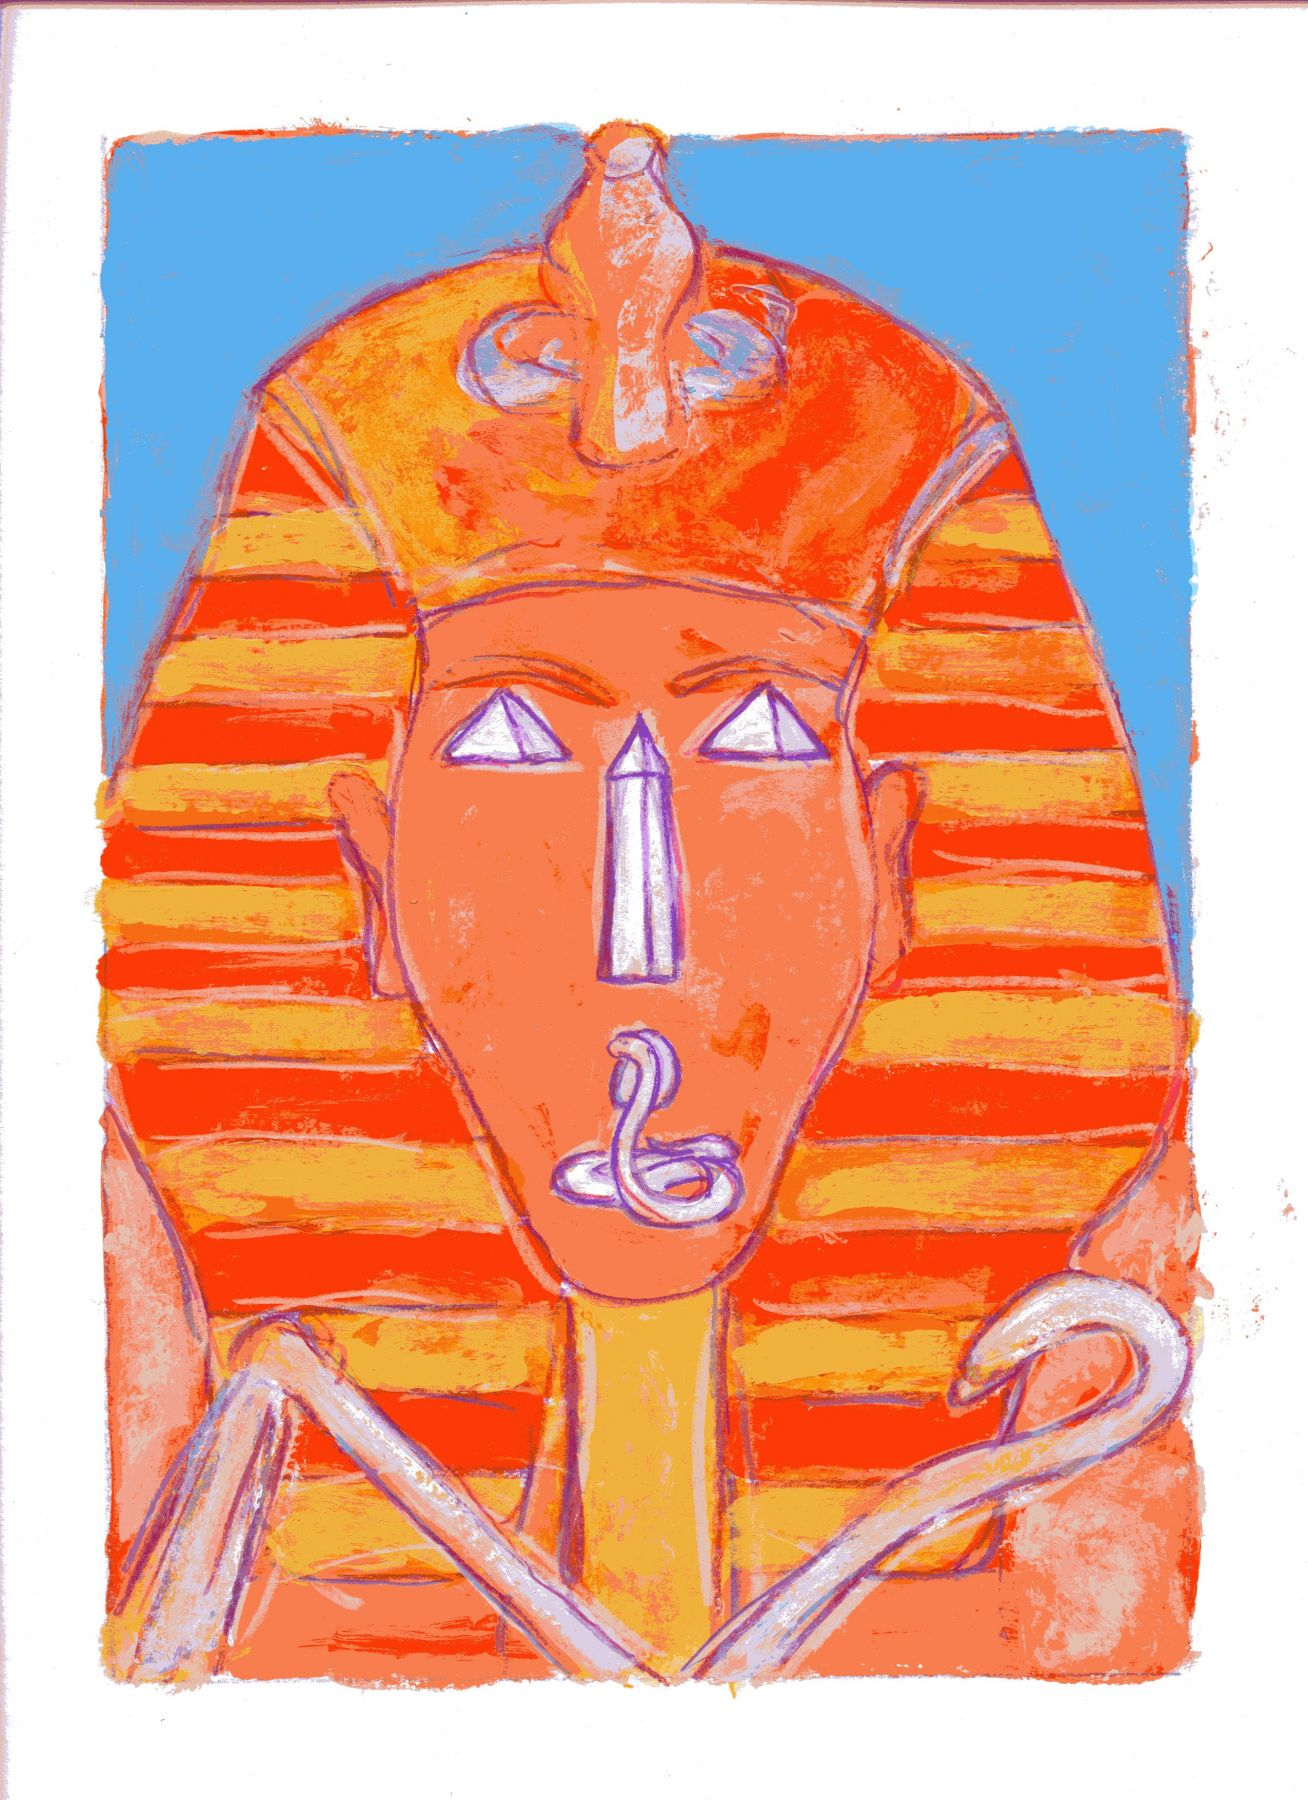 mark podwal, Pharoah who knew not Joseph, 2011, acrylic, gouache and colored pencil on paper, 16 x 12 inches